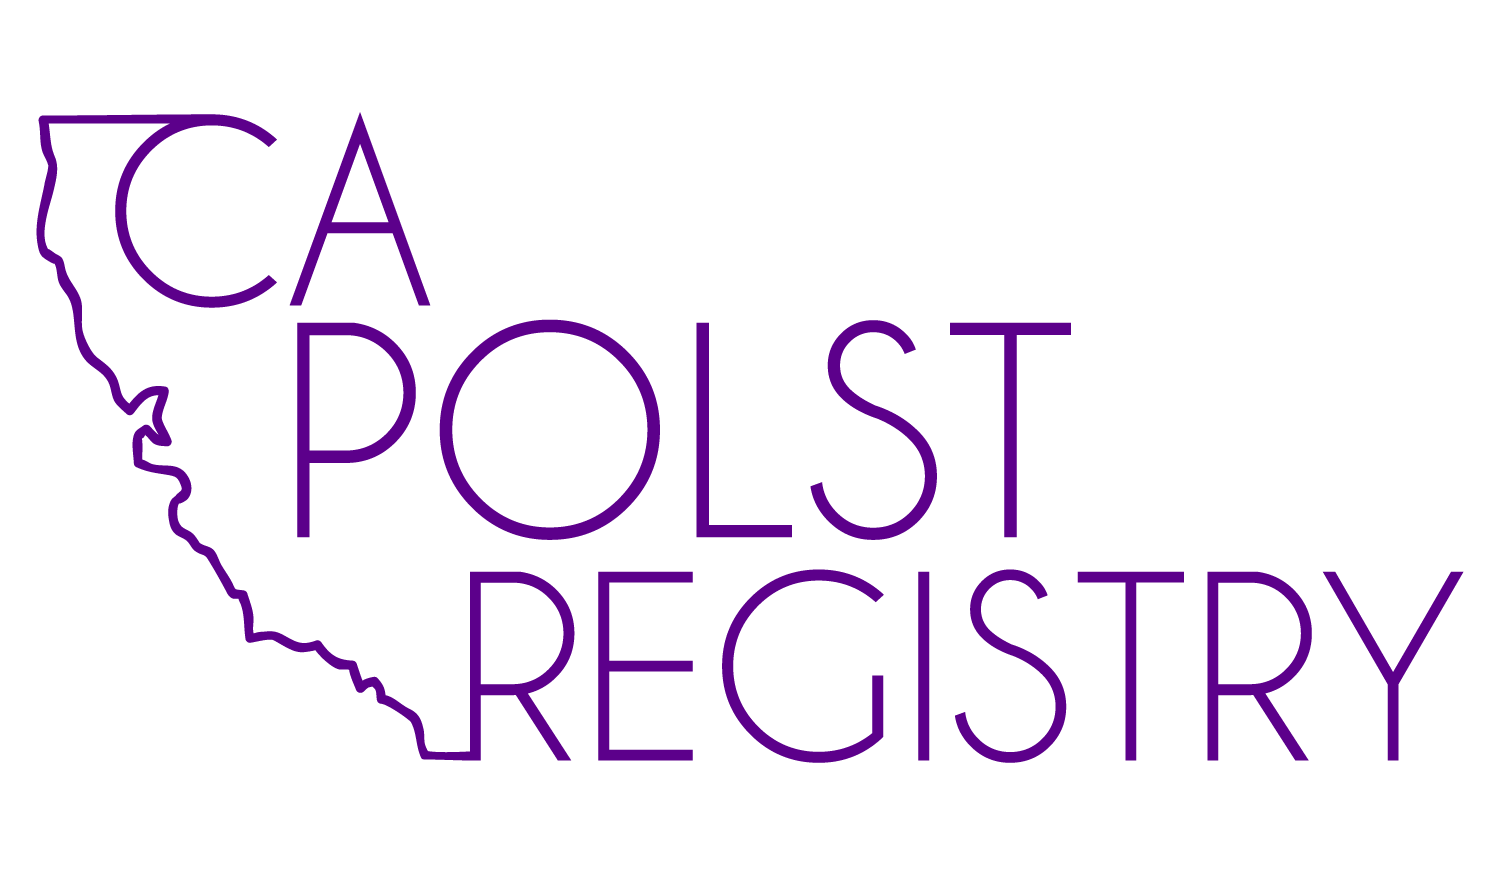 California POLST Registry